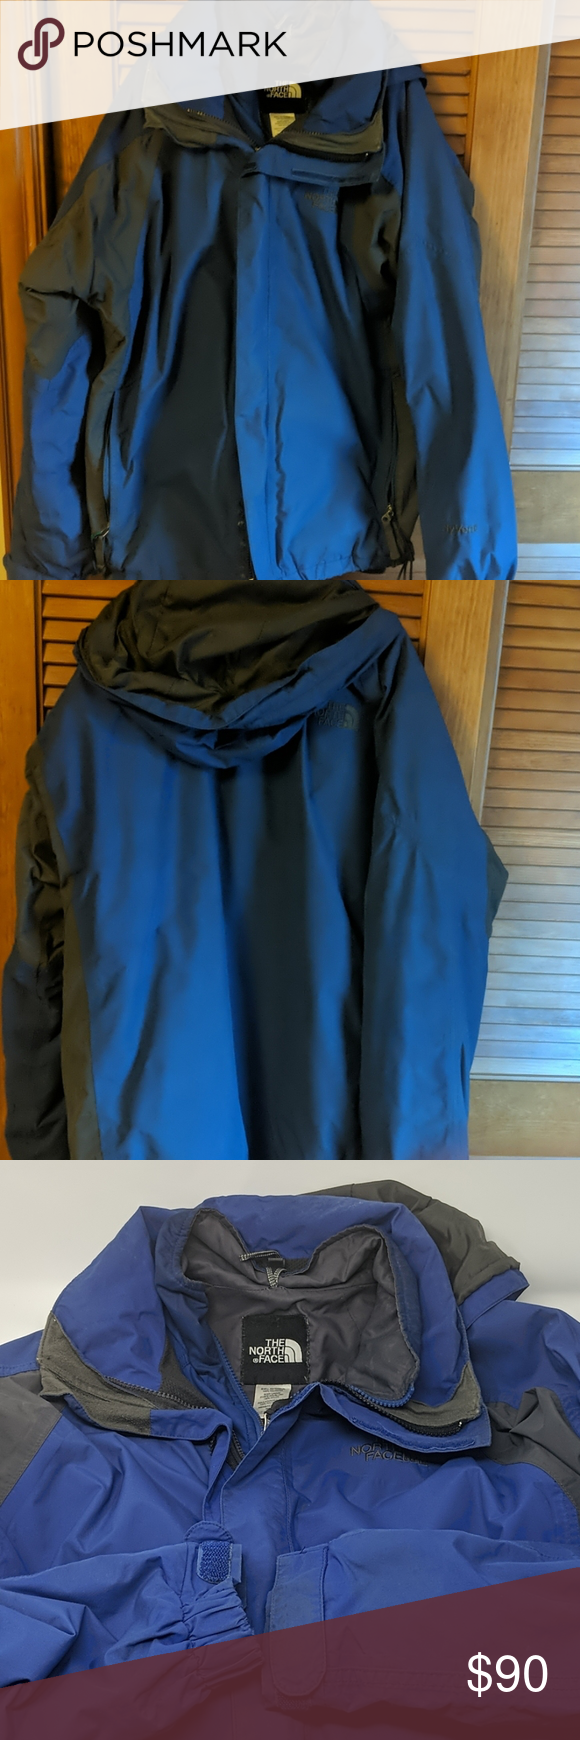 The Northface Hyvent 2 In 1 Ski Winter Jacket M Winter Jackets Winter Outfits The North Face [ 1740 x 580 Pixel ]